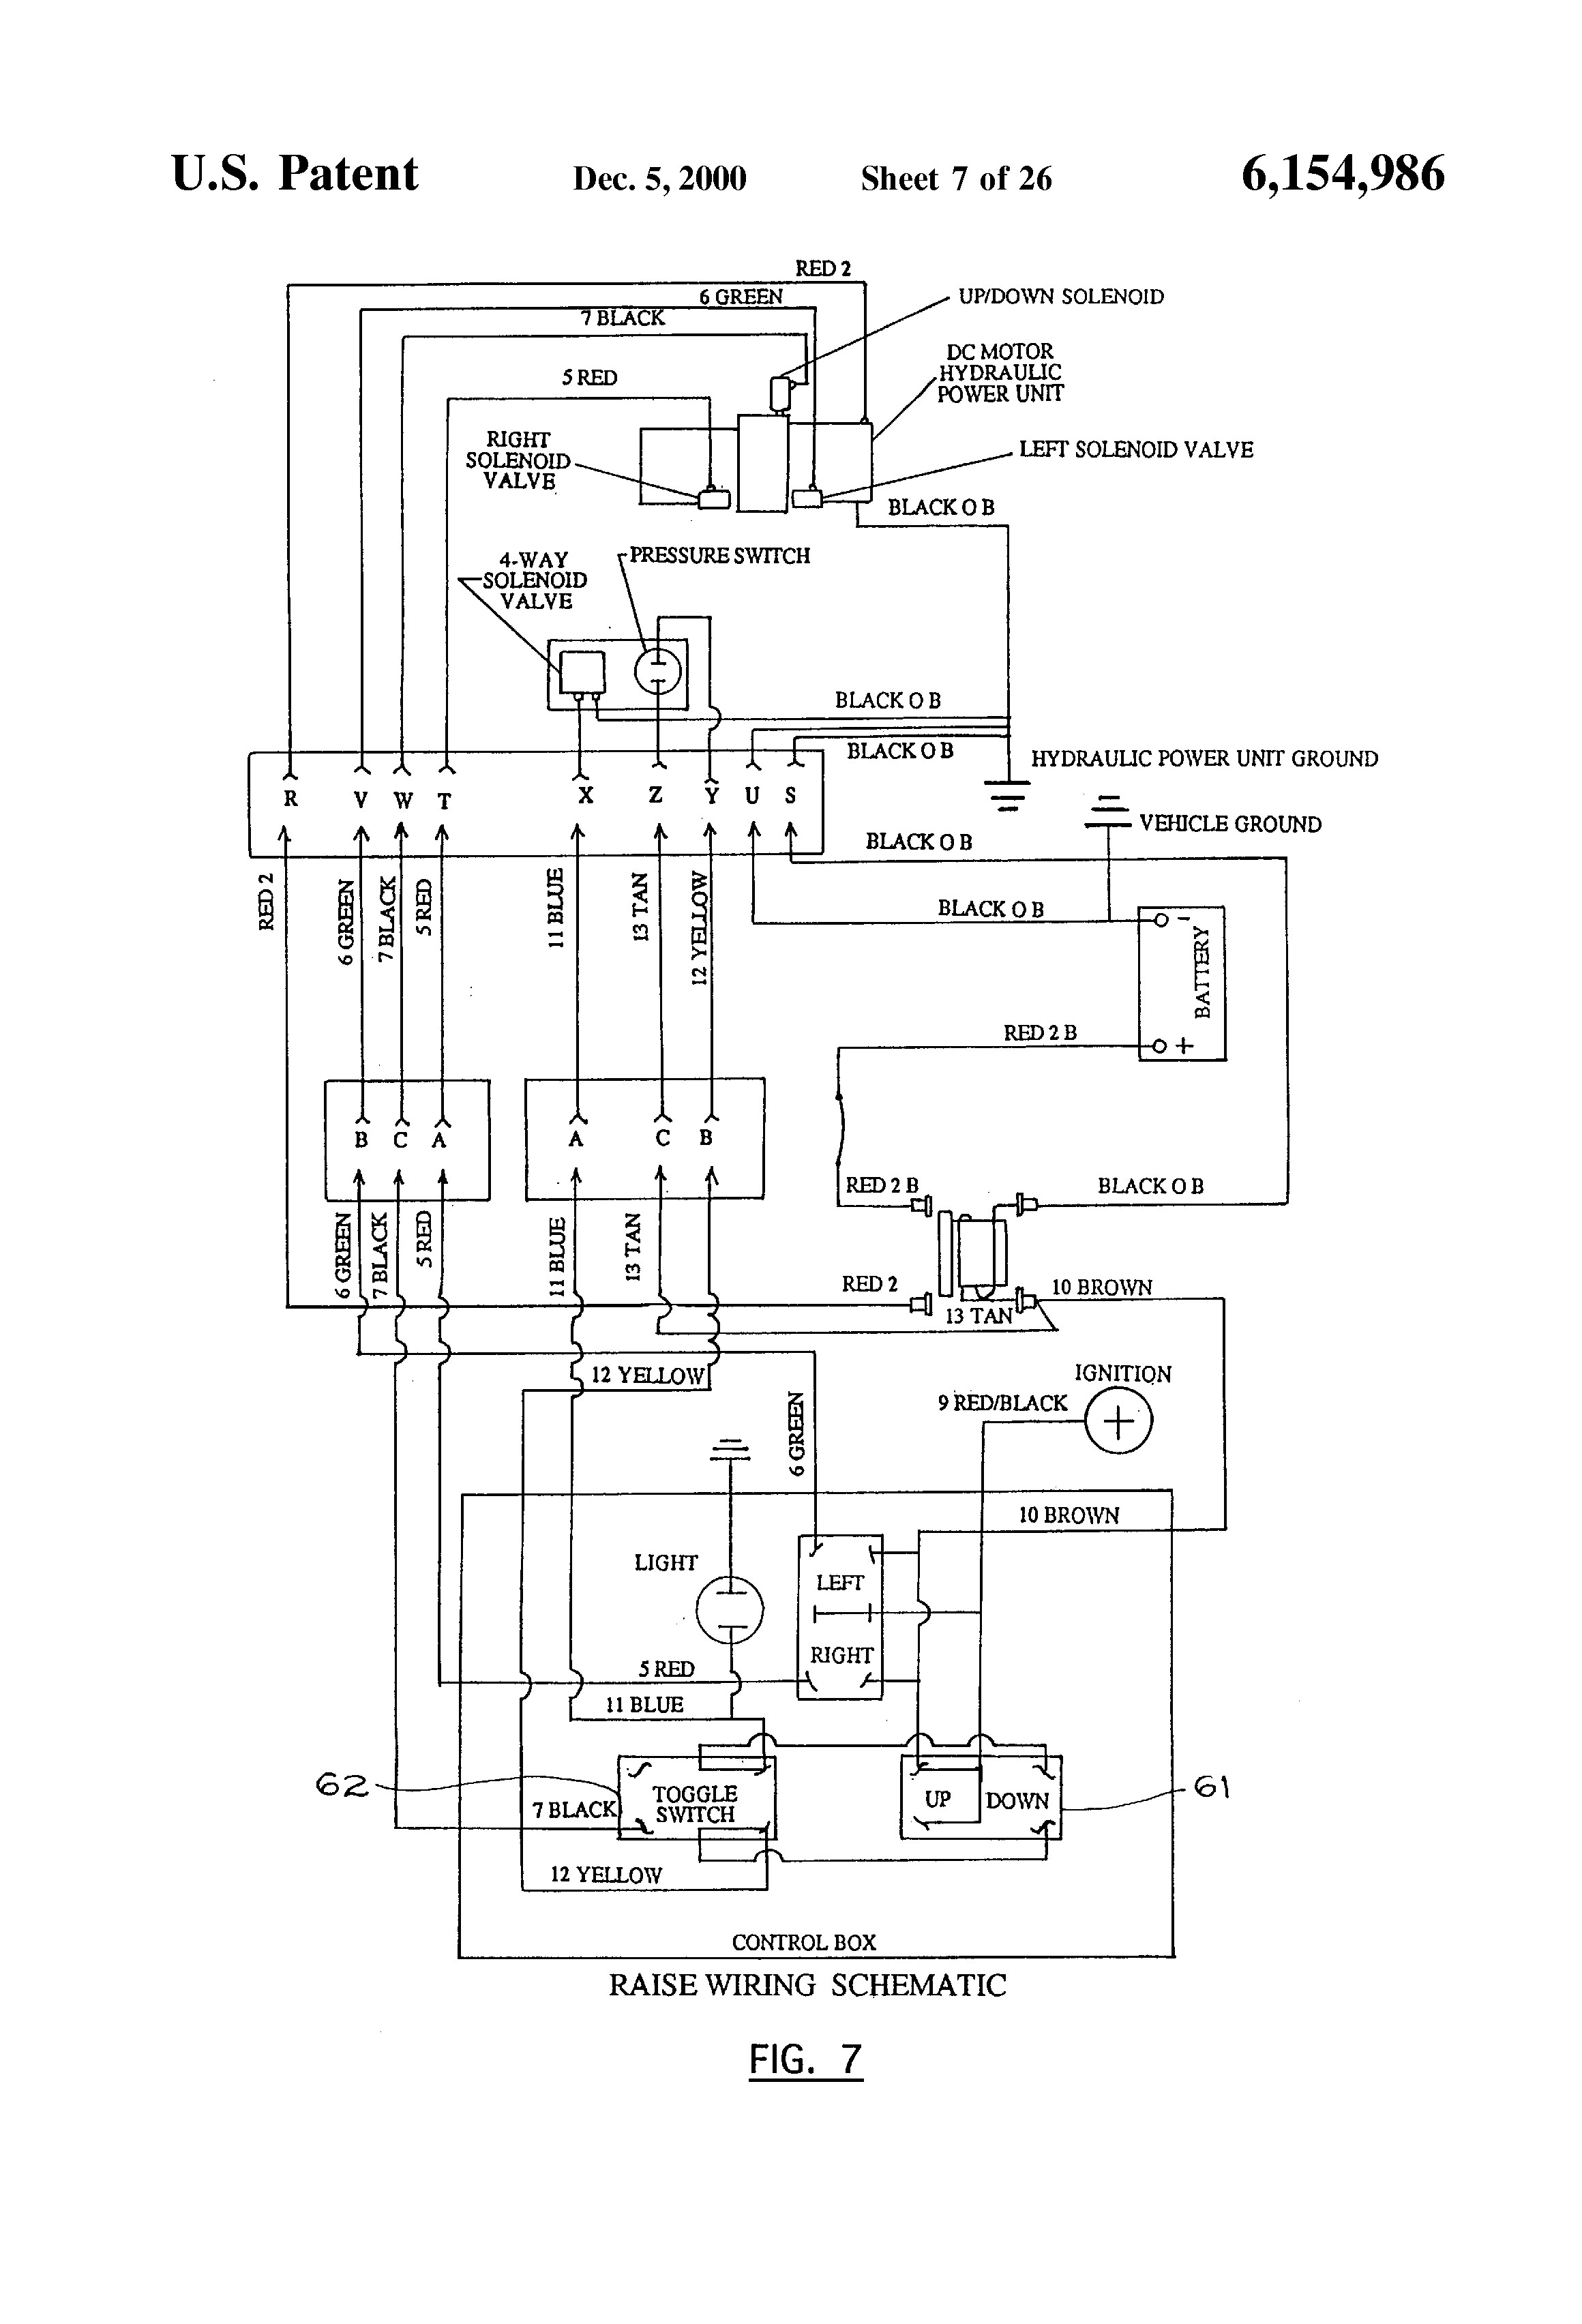 Western Plow Ultra Mount Wiring Diagram